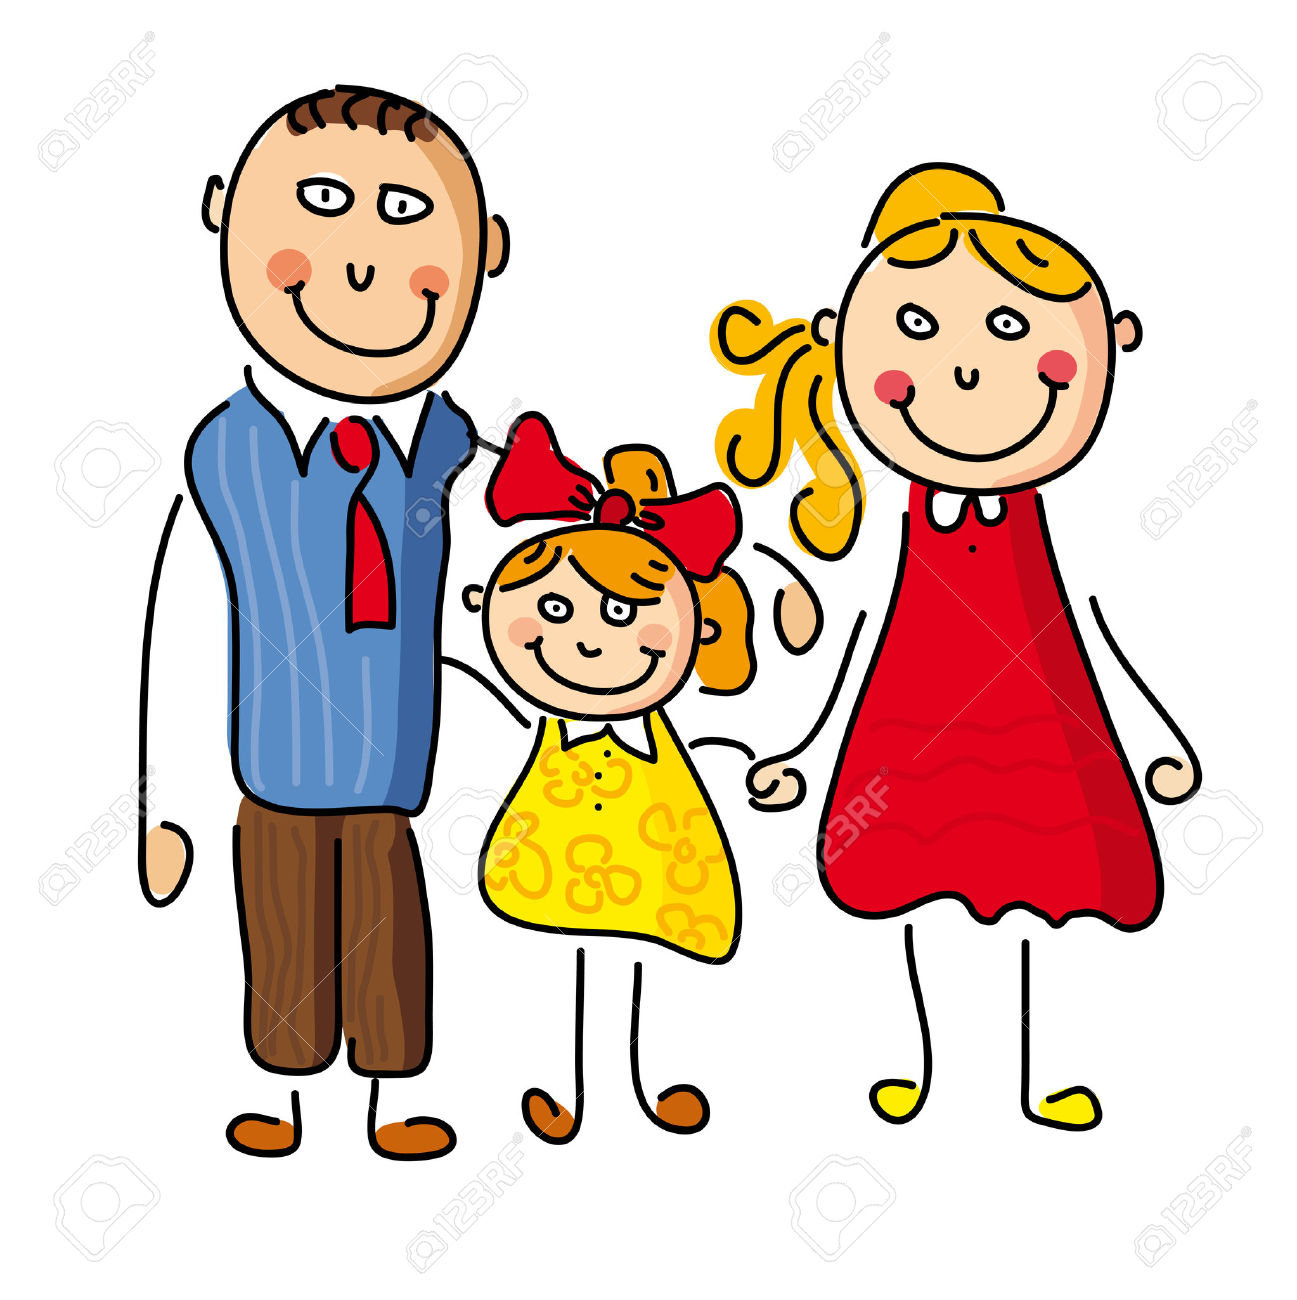 Panda free images daughterclipart. Brothers clipart daughter